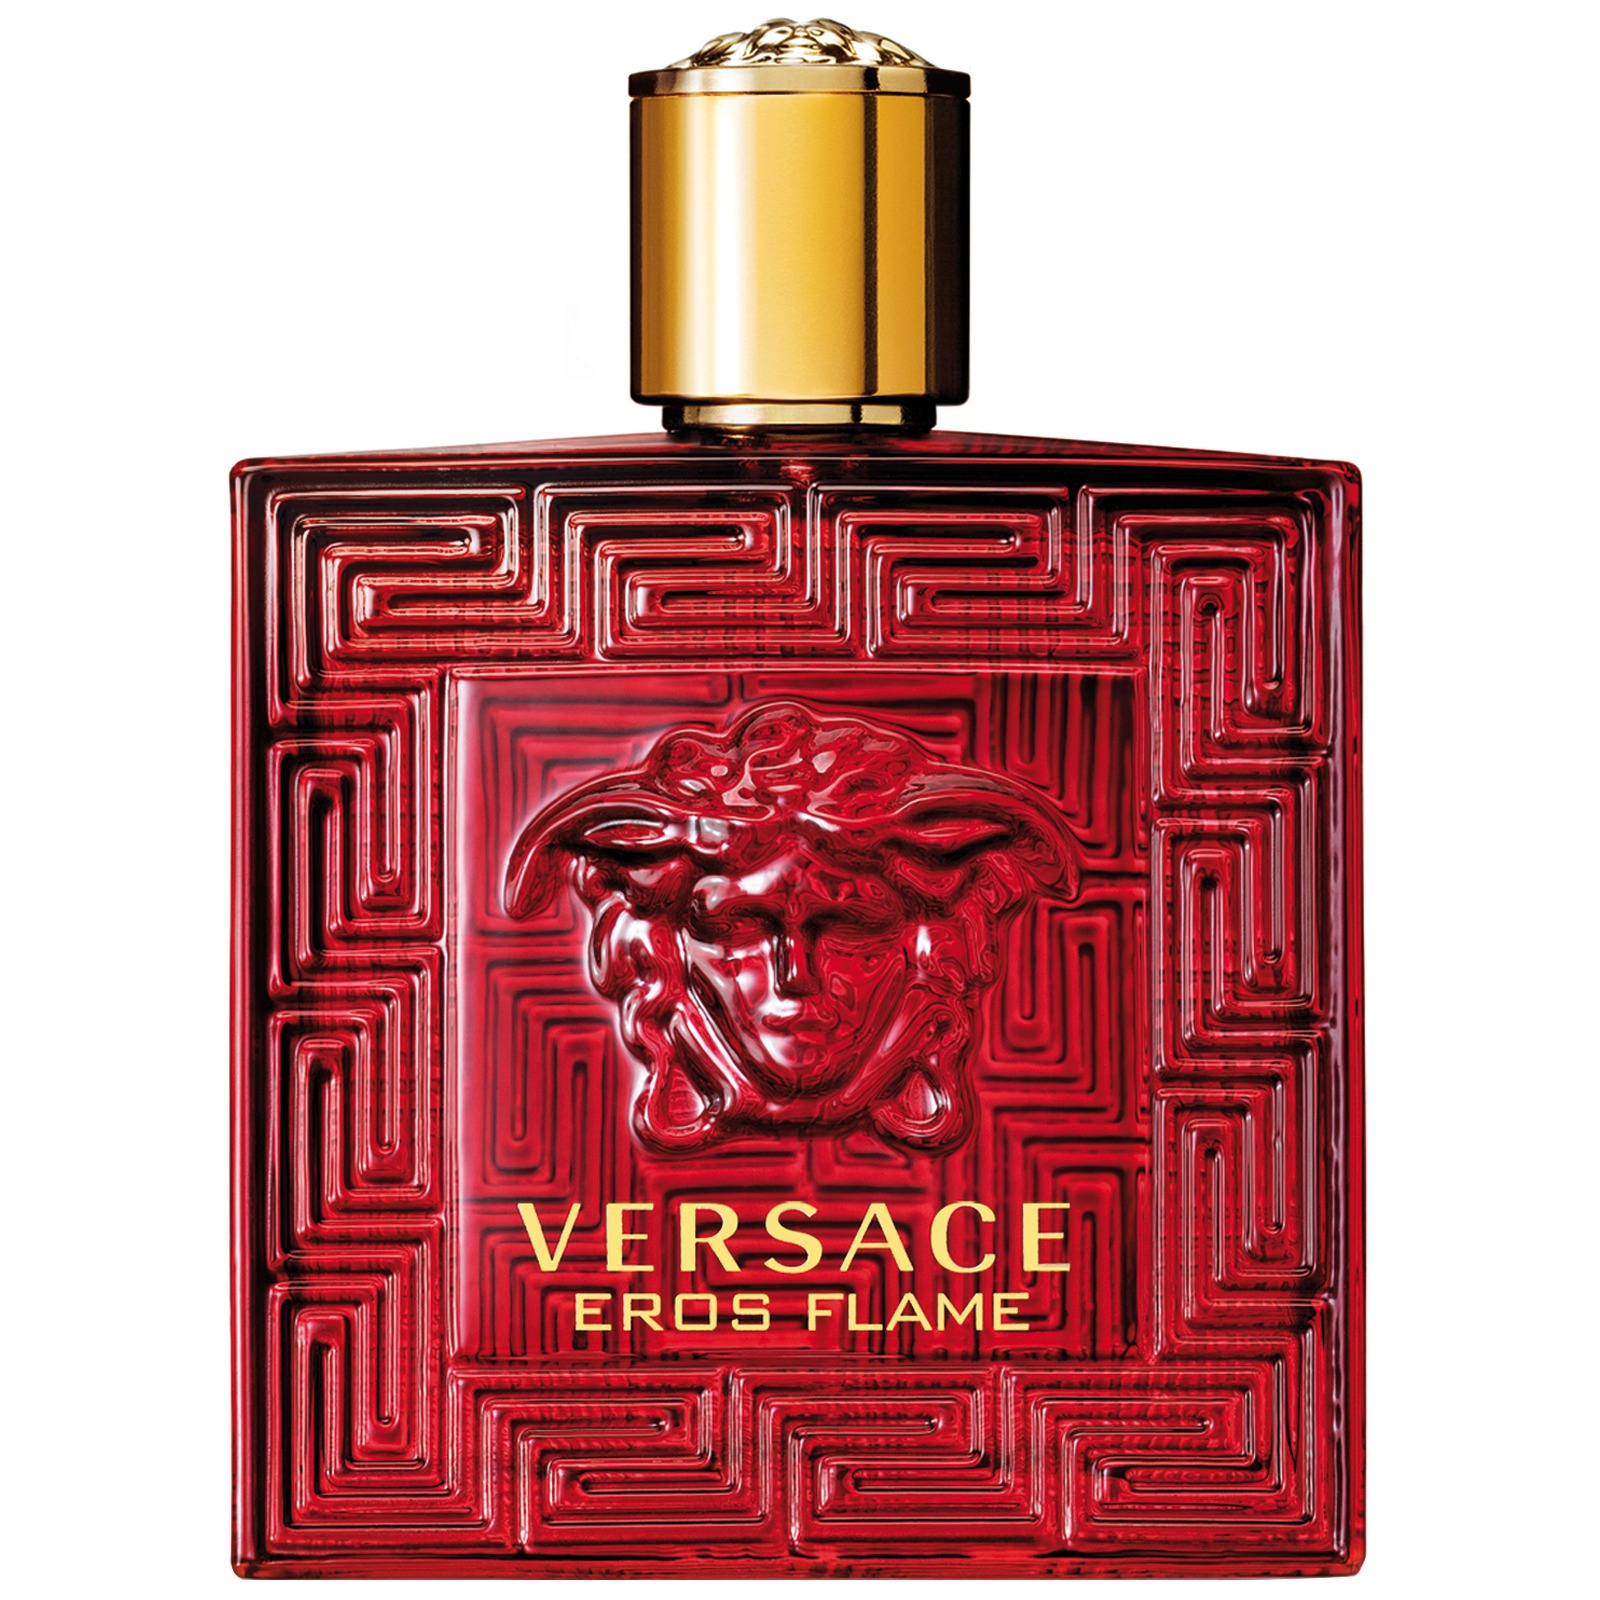 Versace Eros Flame Eau de Parfum Spray 100ml